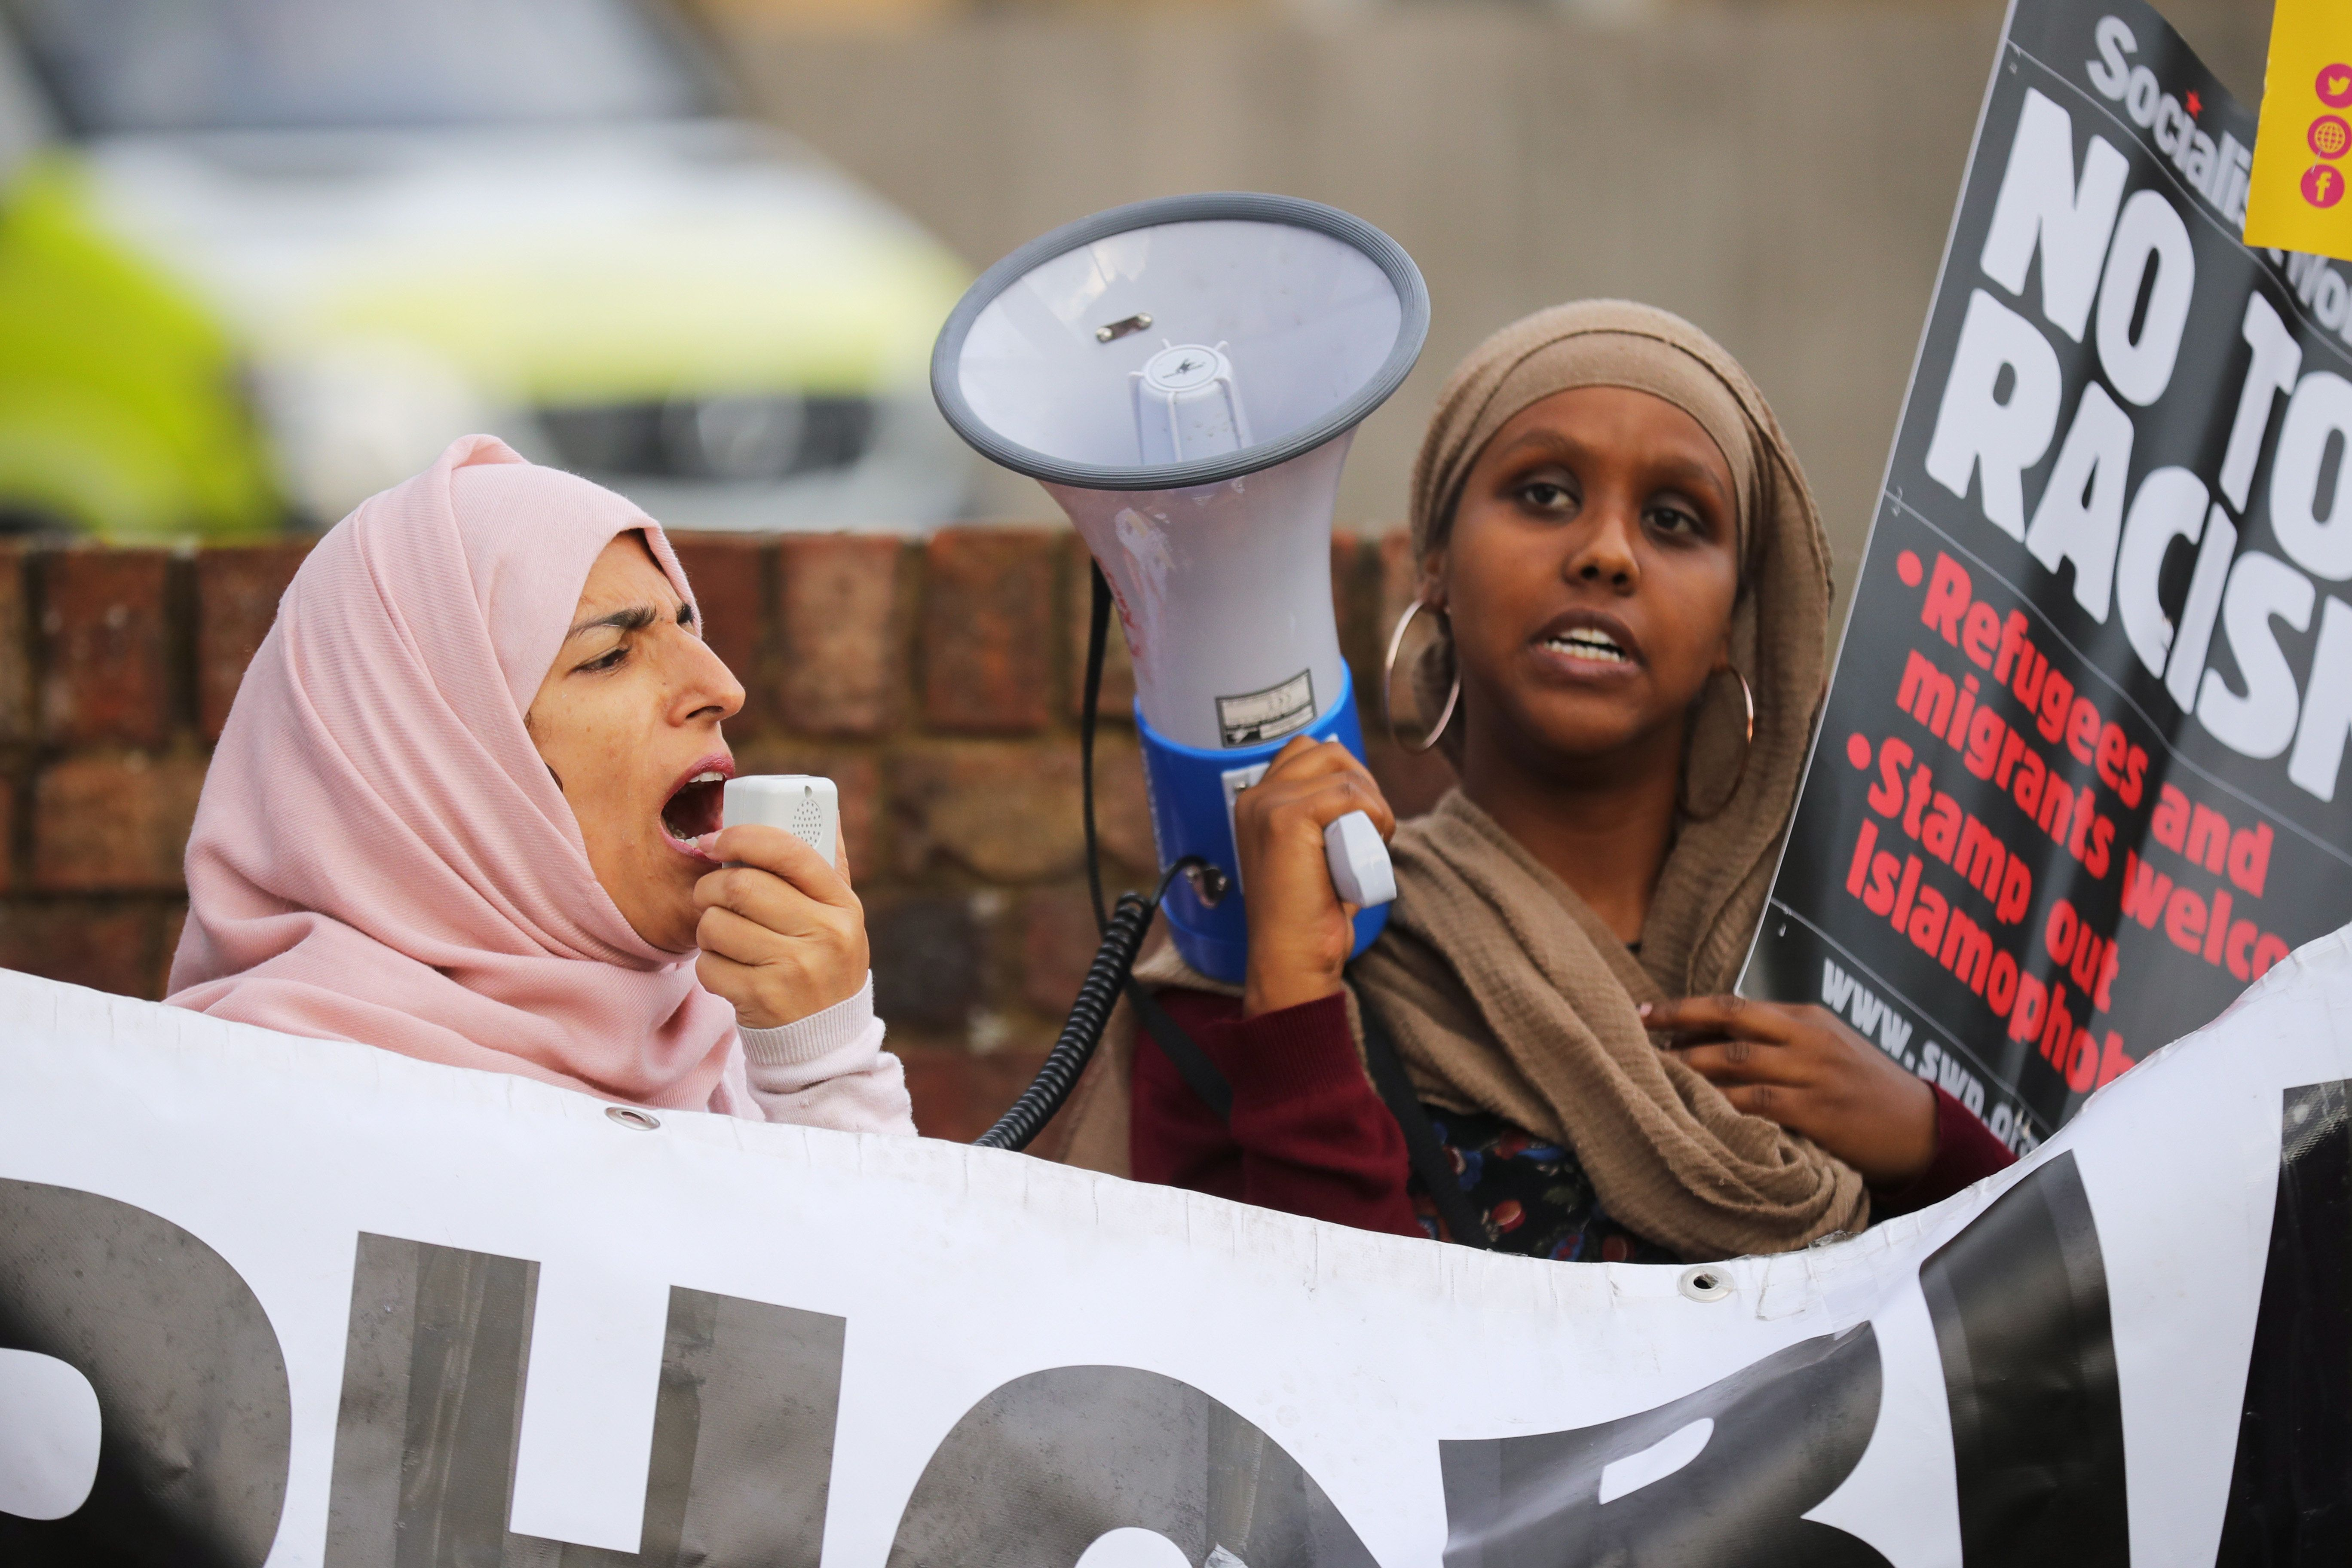 UXBRIDGE, ENGLAND - AUGUST 09:  Local people protest outside the Hillingdon Conservative Association office on August 9, 2018 in Uxbridge, England. Today's protest is being held following comments made by former Foreign Secretary, Boris Johnson, against the wearing of Burkas by Muslim women in the United Kingdom. An independent panel will investigate complaints made regarding Mr Johnson's comments and possible breaches of the Conservative Party code of conduct.  (Photo by Christopher Furlong/Getty Images)